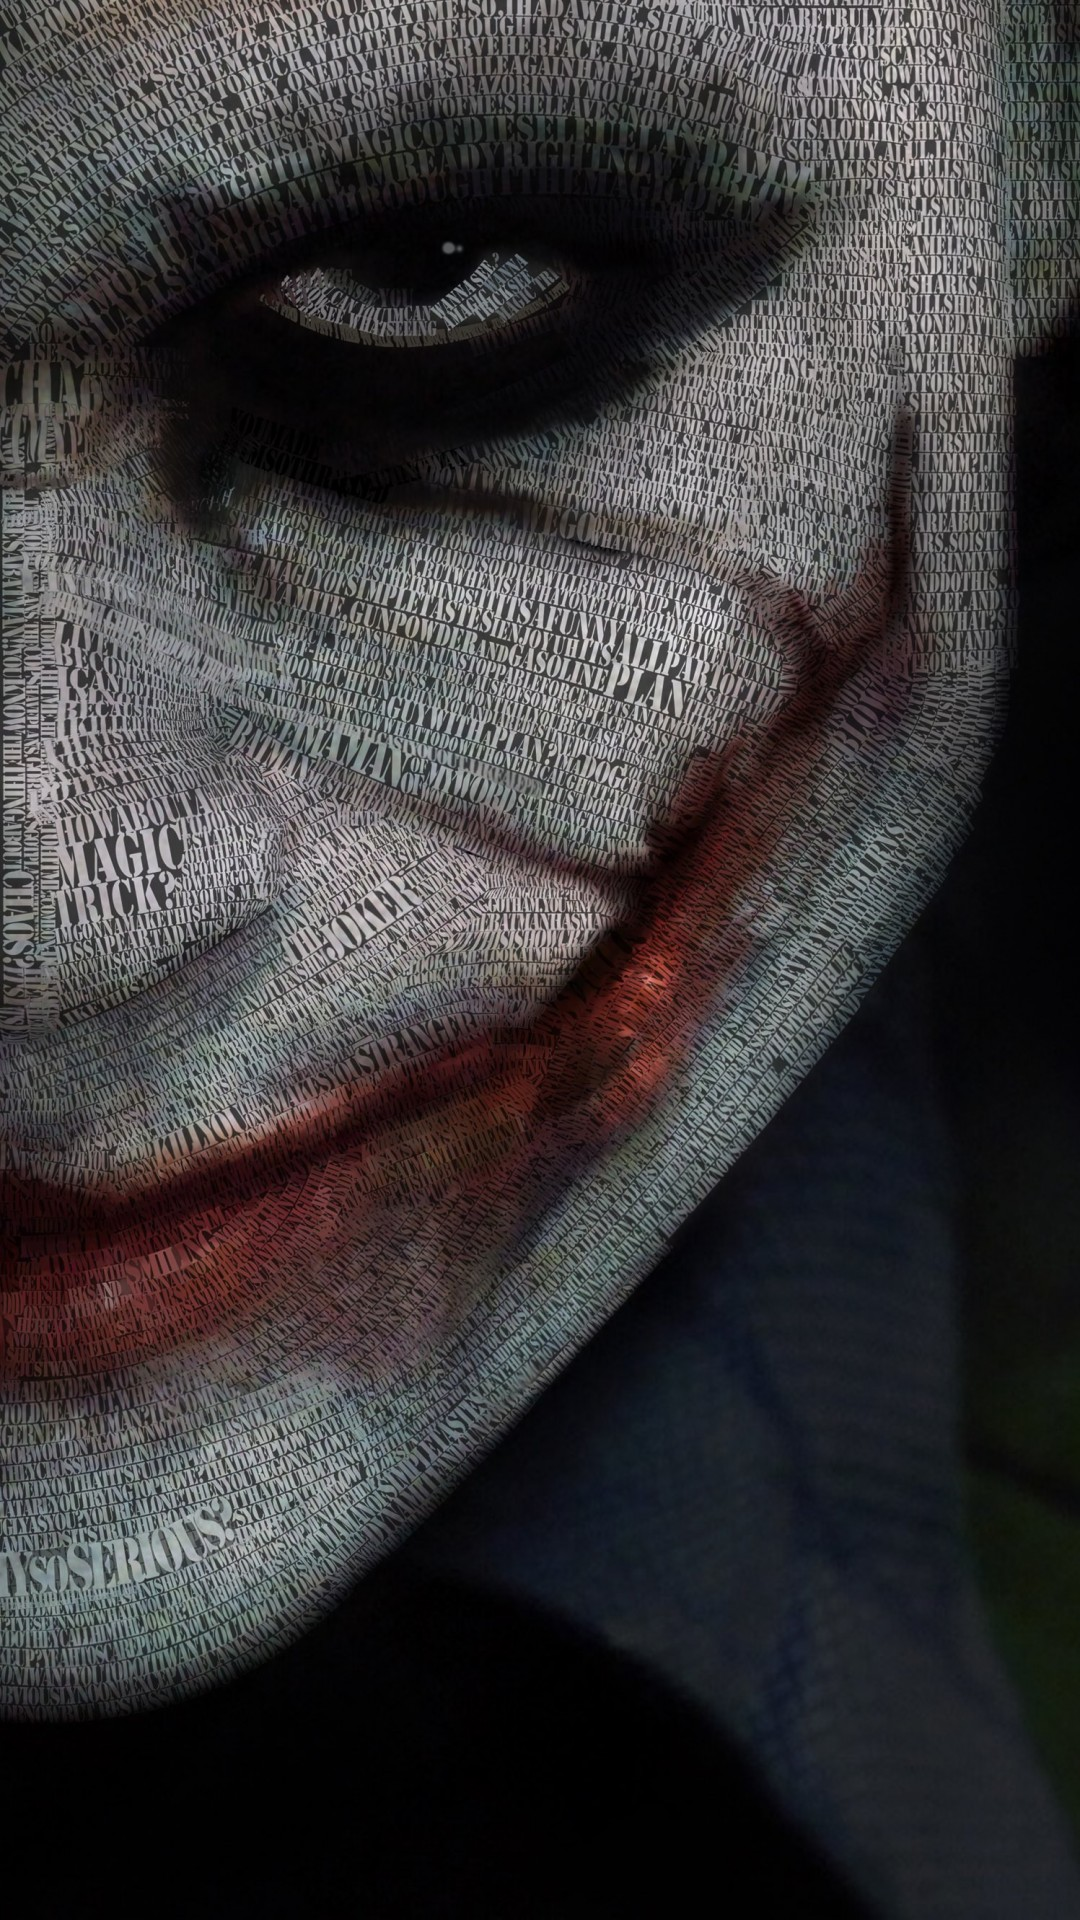 The Joker Typeface Portrait Wallpaper for SAMSUNG Galaxy Note 3